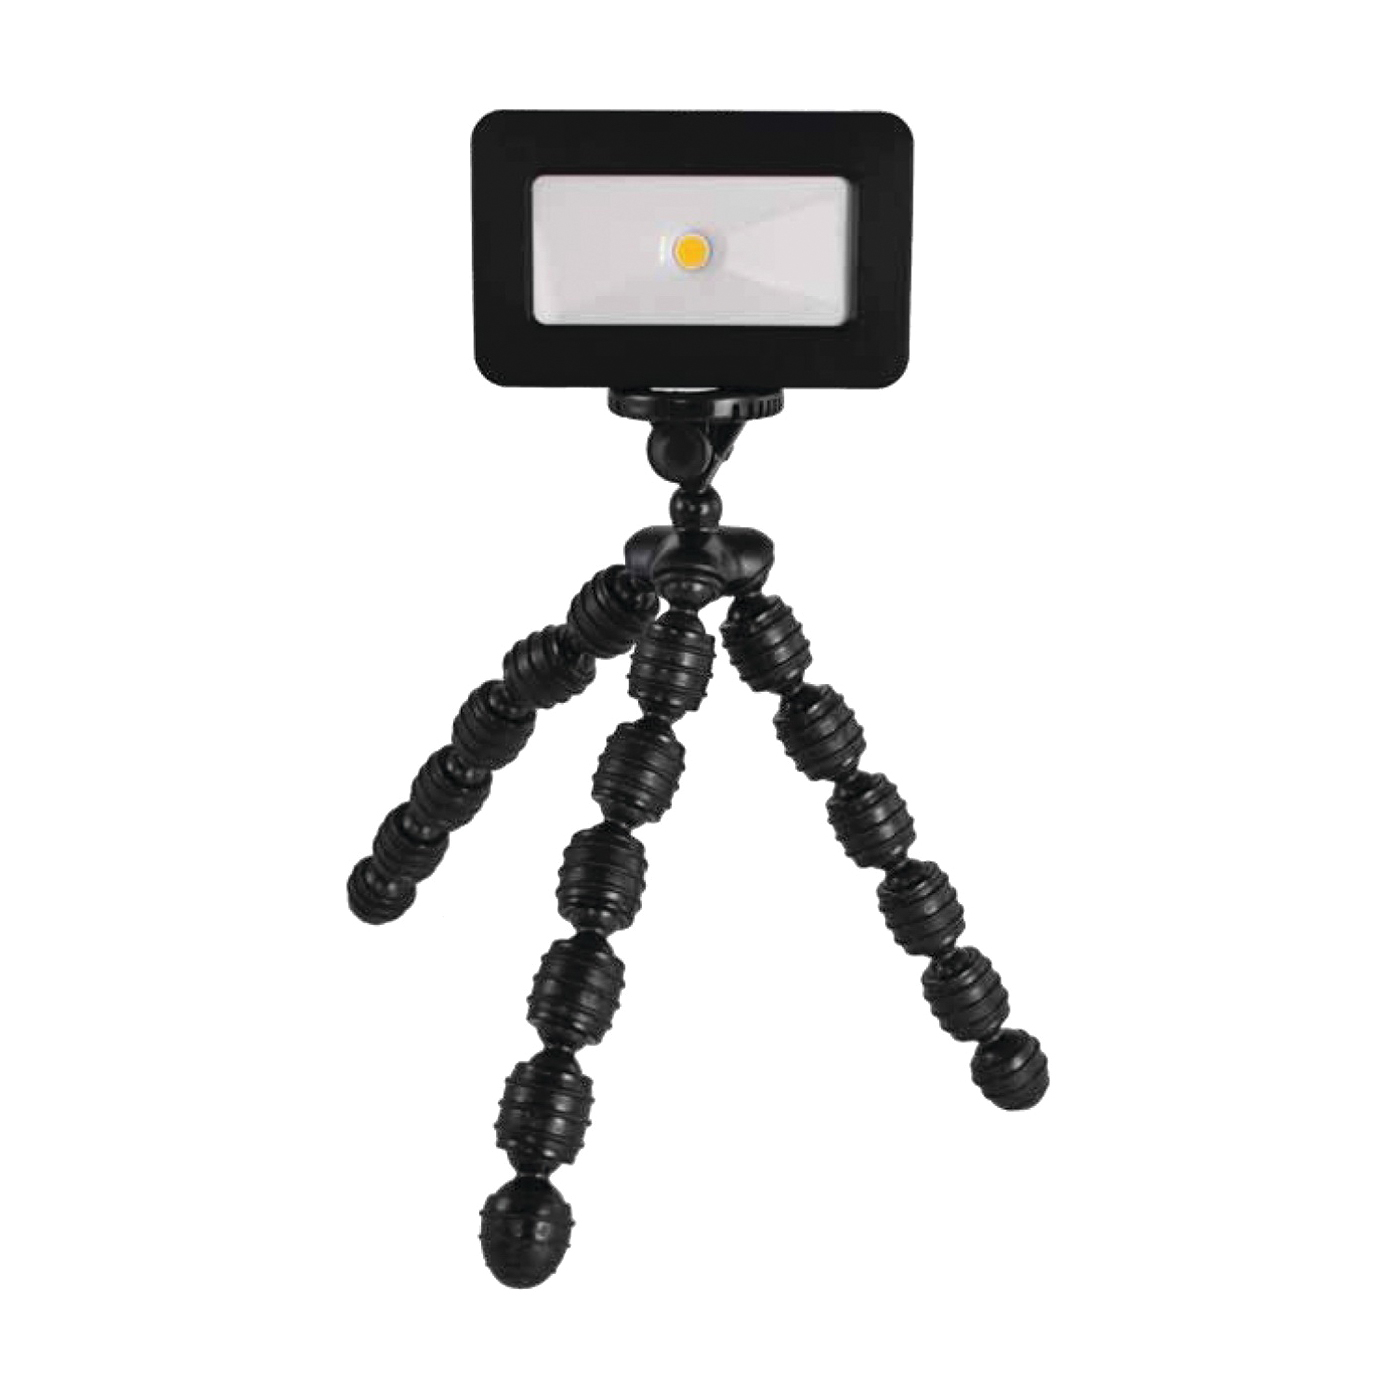 Picture of PowerZone P1000F2 Work Light, 110/240 V, 15 W, LED Lamp, 4000 Lumens, 4000 K Color Temp